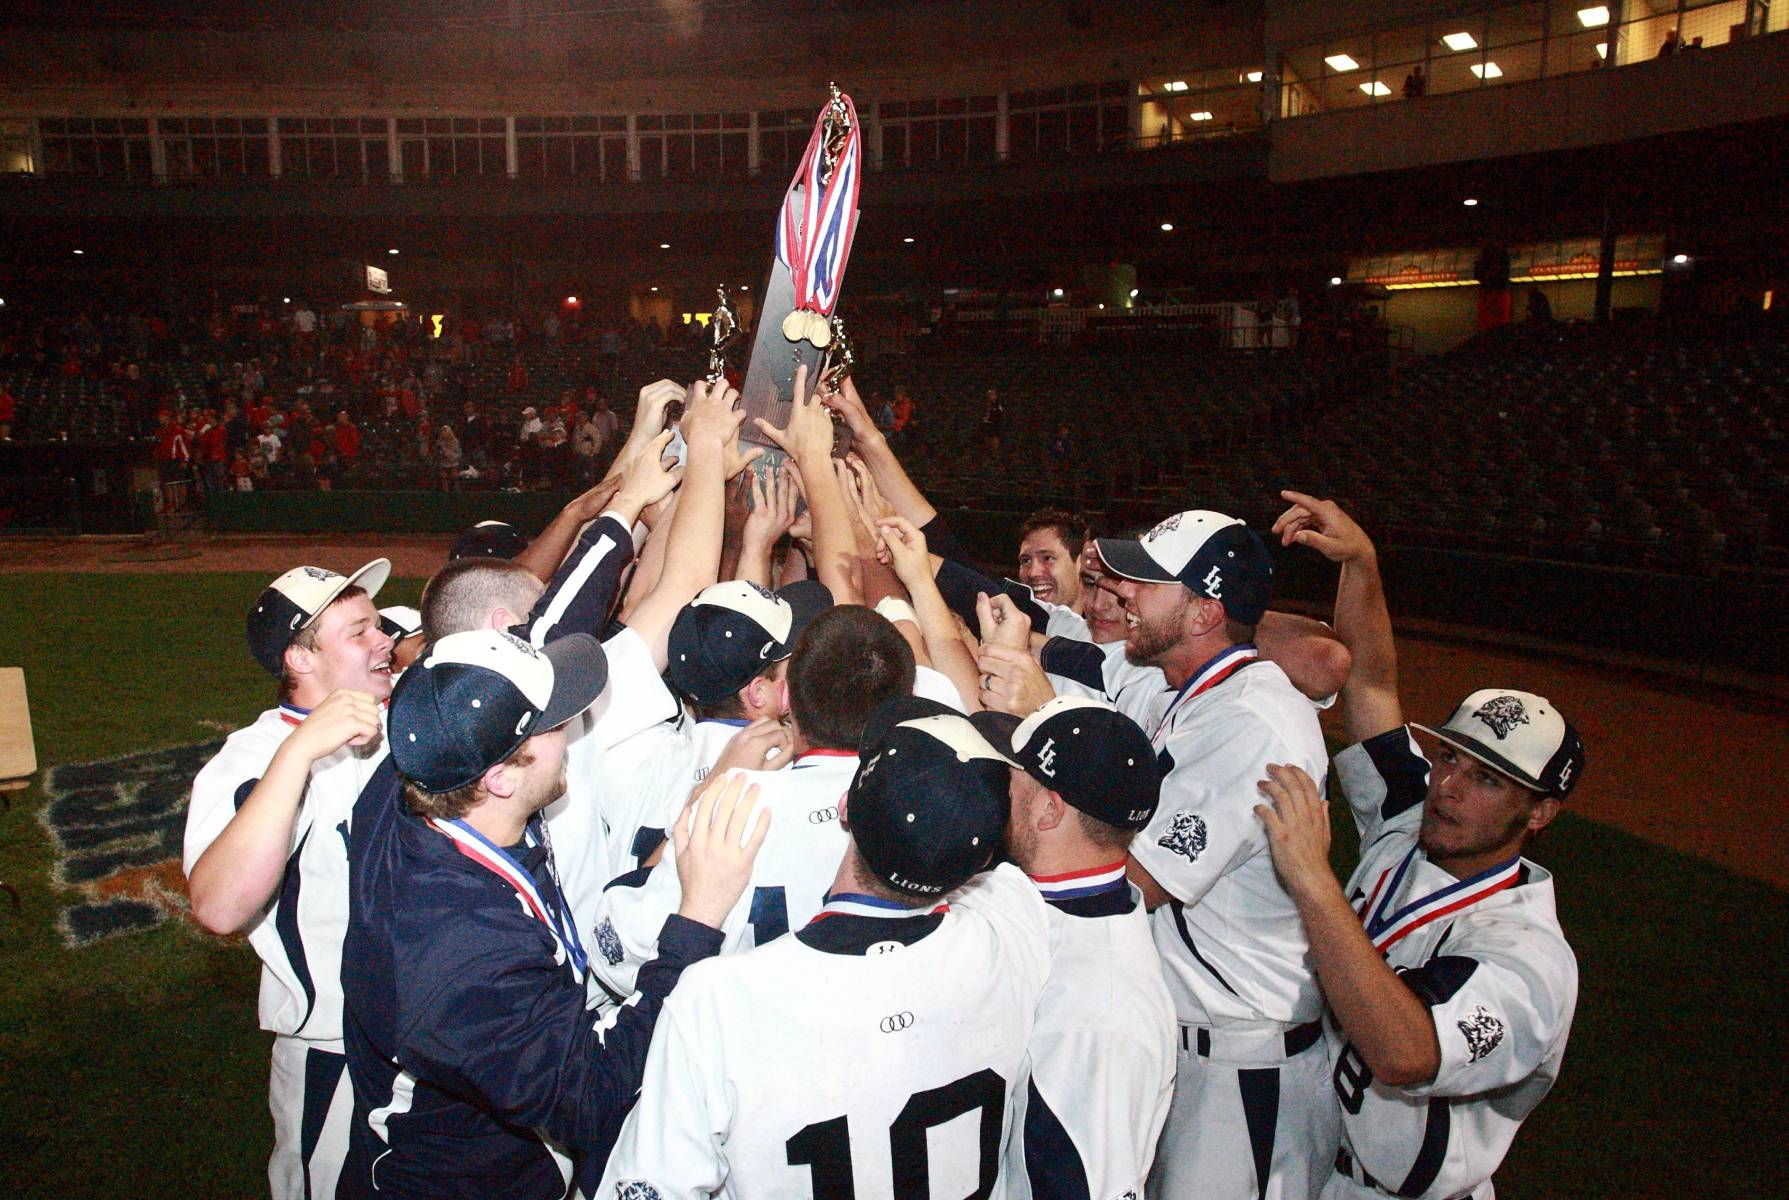 Members of the 2013 Lions baseball team celebrate their new state baseball trophy at the IHSA state baseball tournament in June.